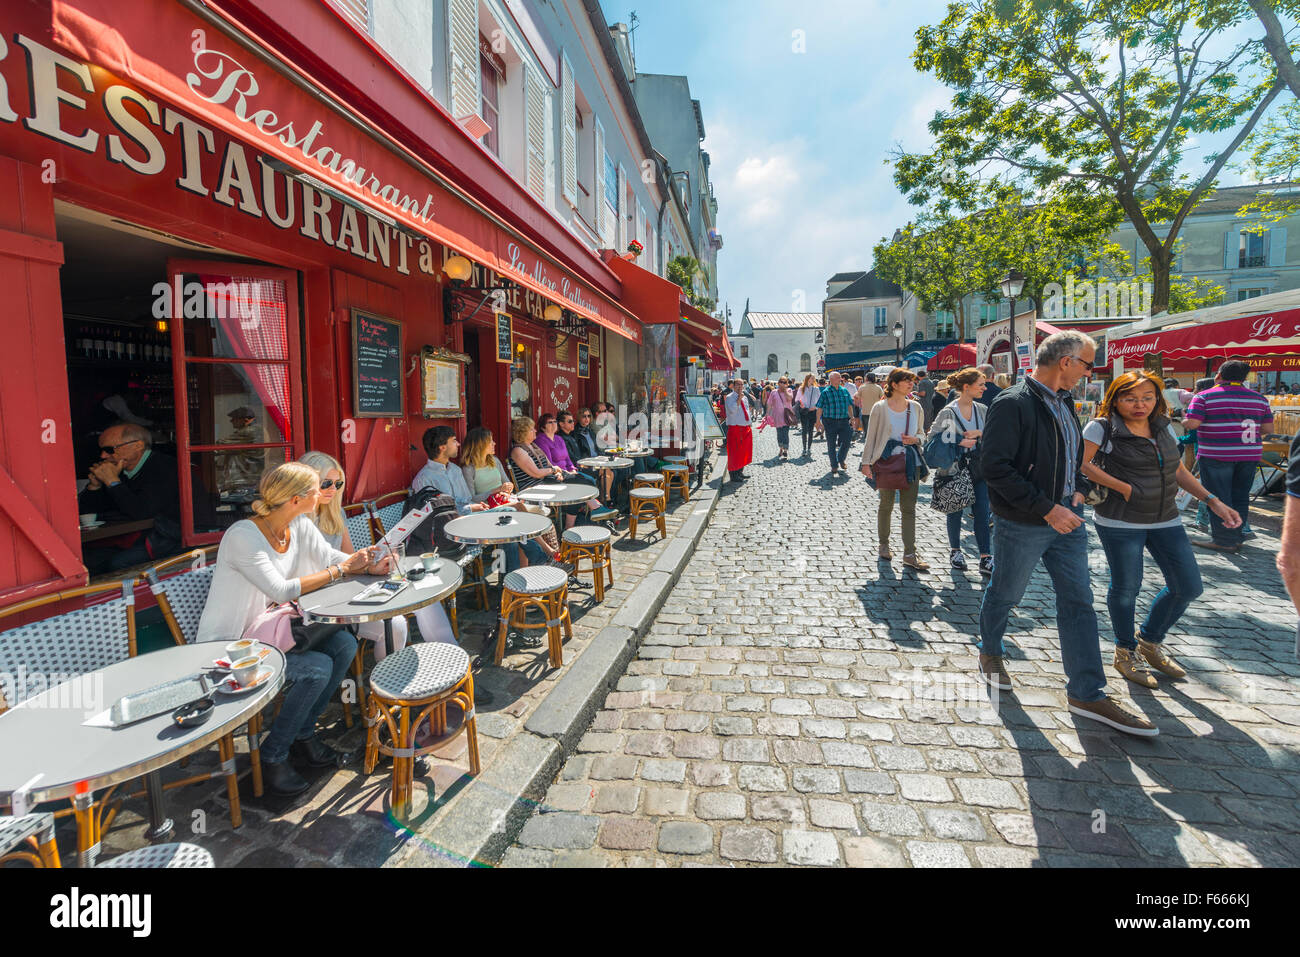 Restaurants and people on street in Montmartre, Paris, Ile-de-France, France - Stock Image